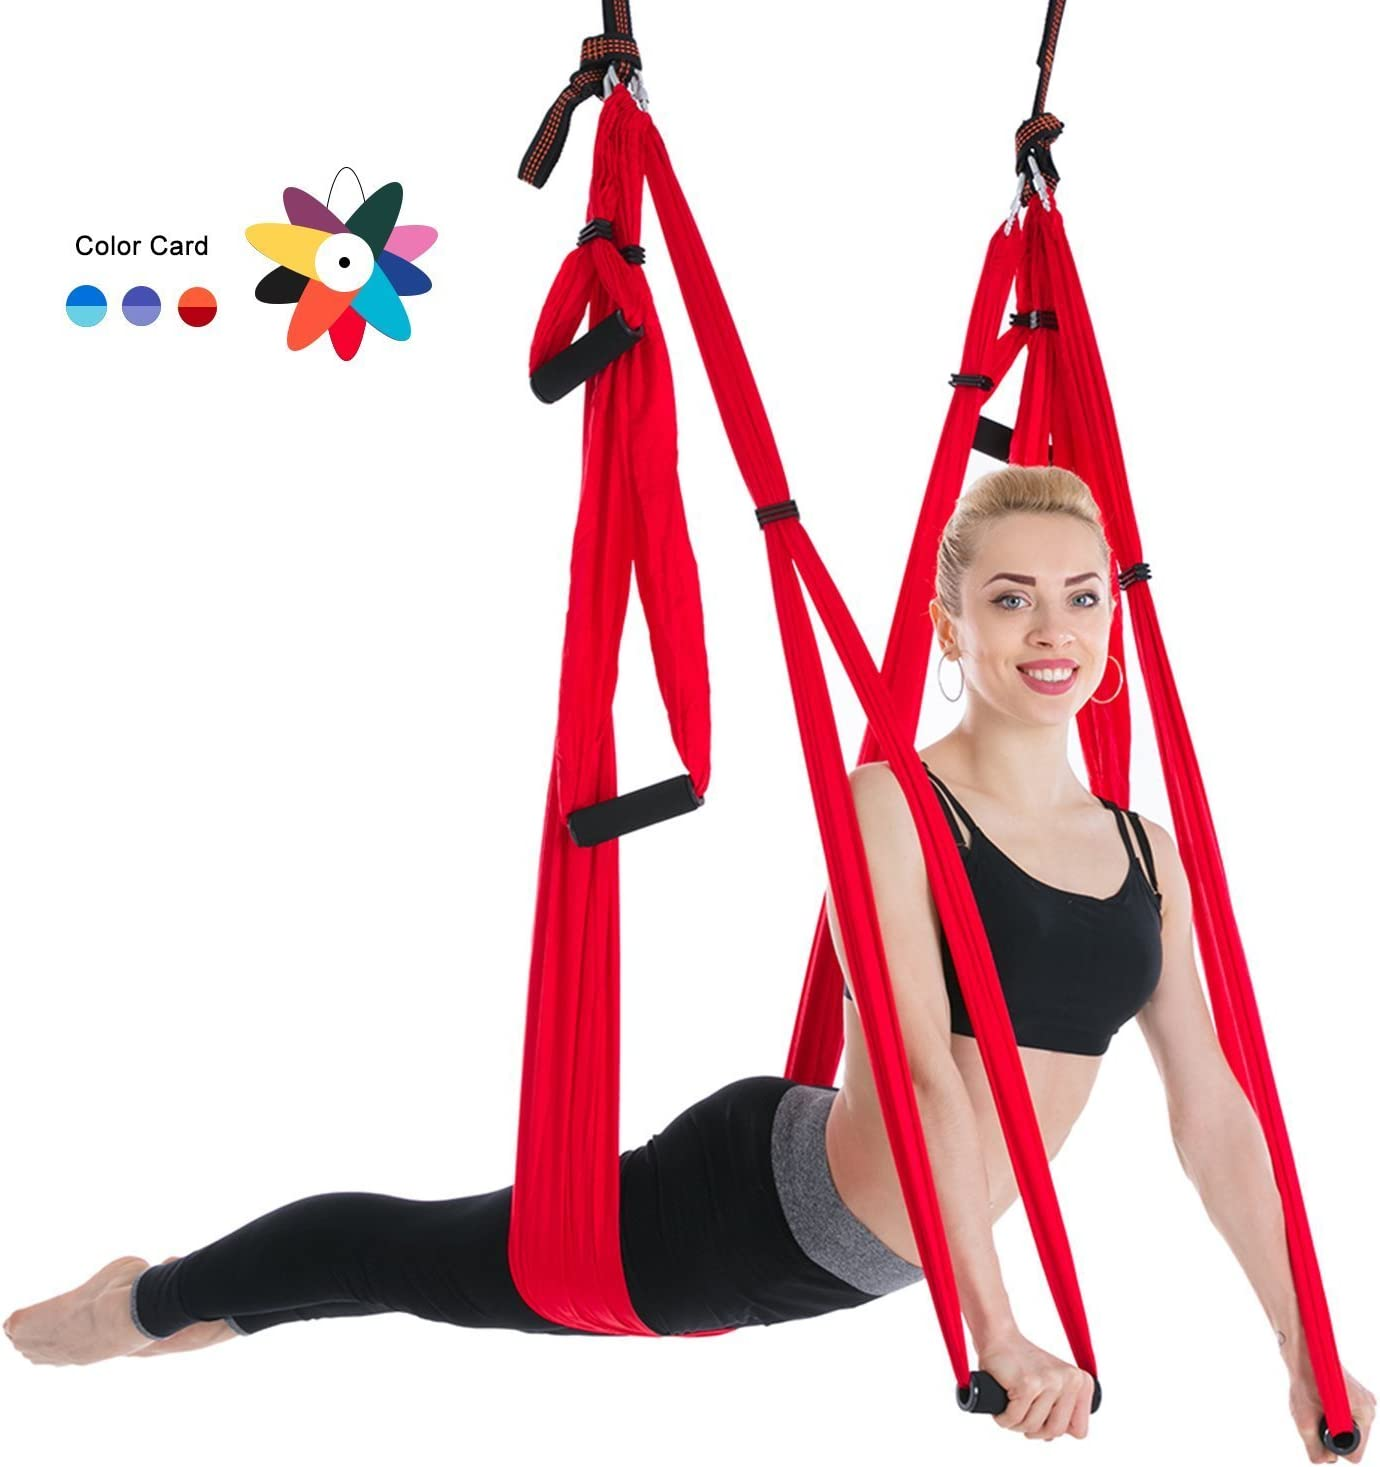 Ranbo Yoga Inversion Swing - Trapeze Flyin Anti-Gravity OFFicial shop Import Aerial